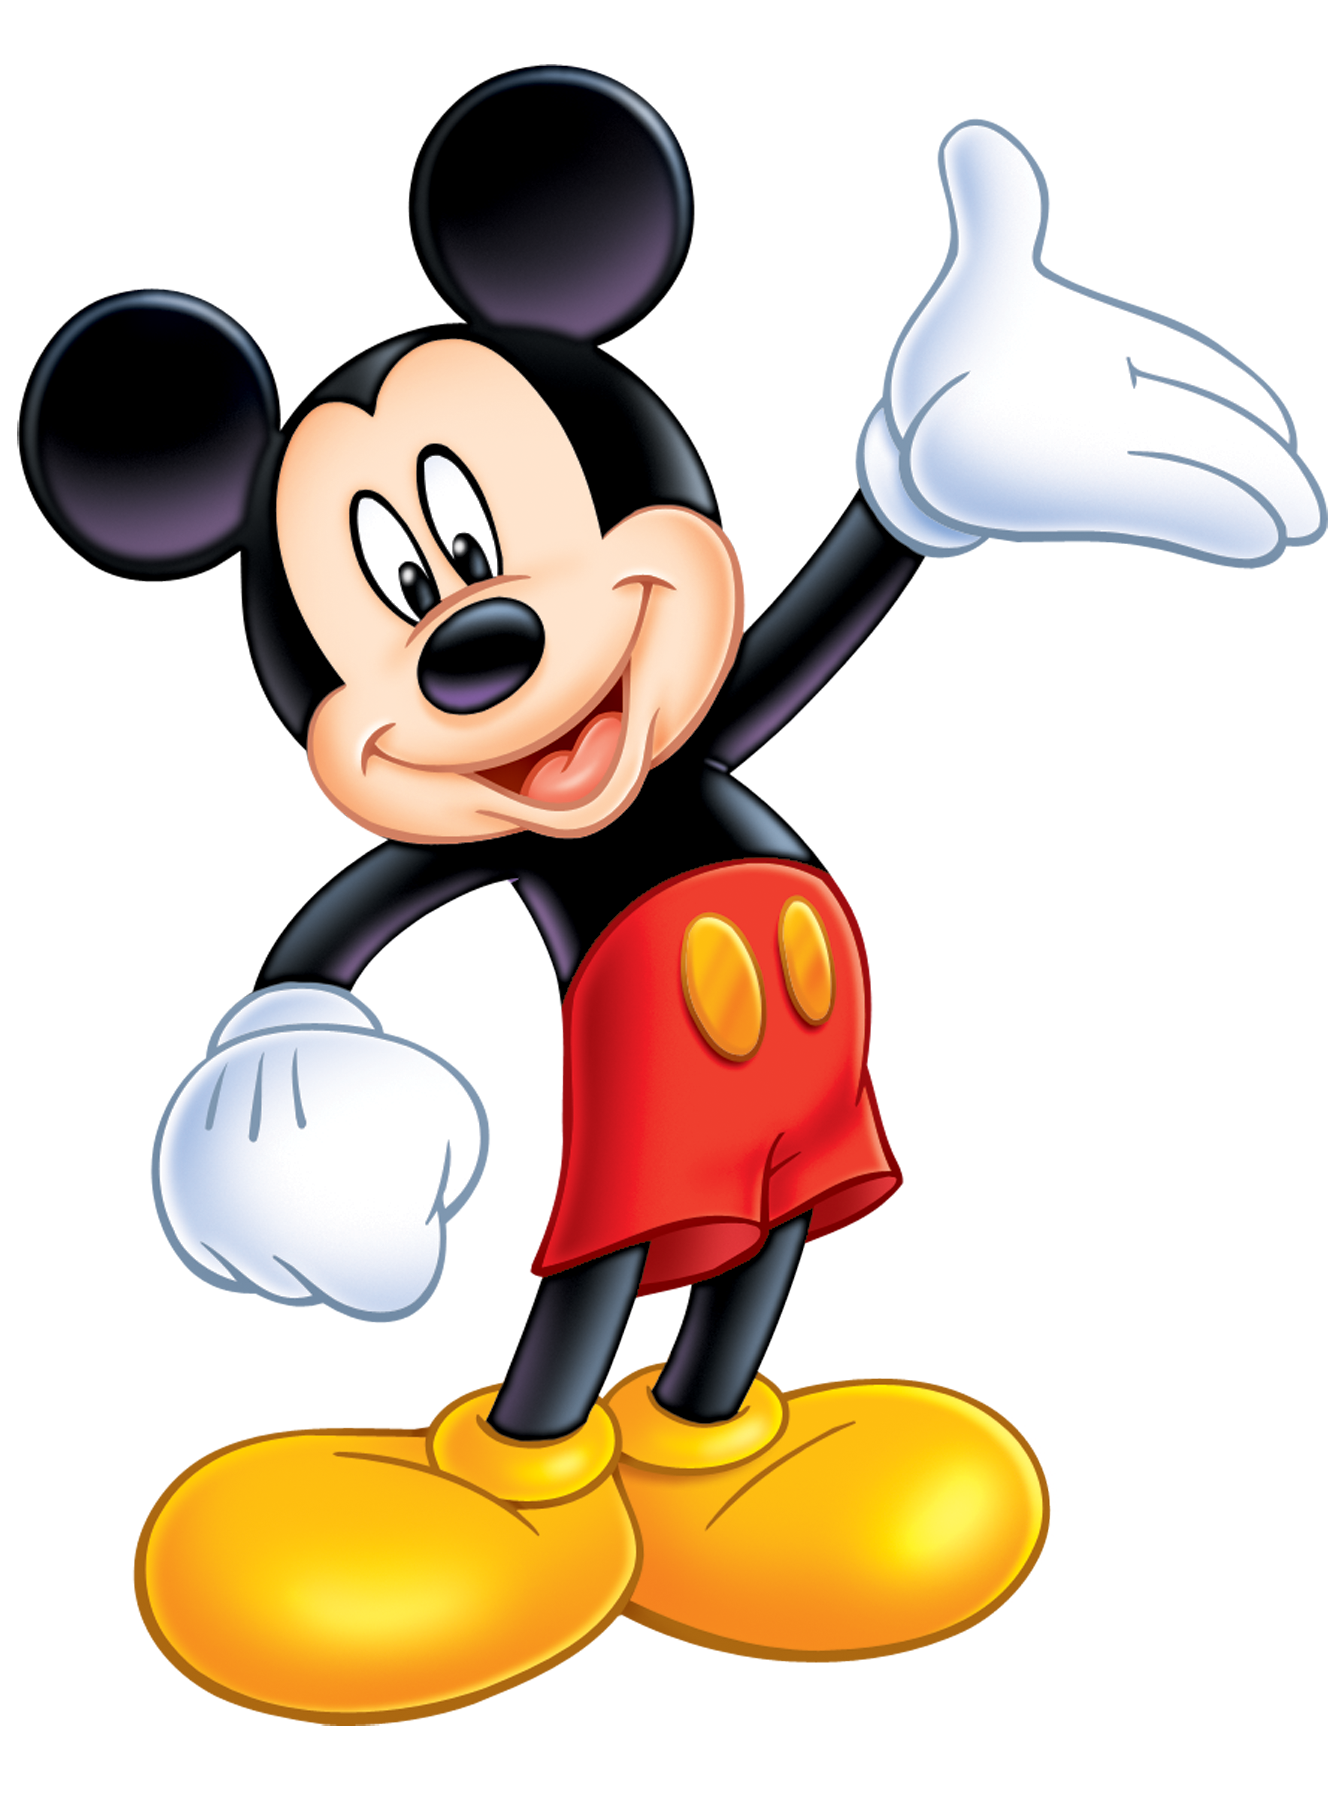 Baby disney basketball clipart clip royalty free stock The Legend, The Icon, The Mouse. Mickey Mouse. | My Pal Mickey ... clip royalty free stock